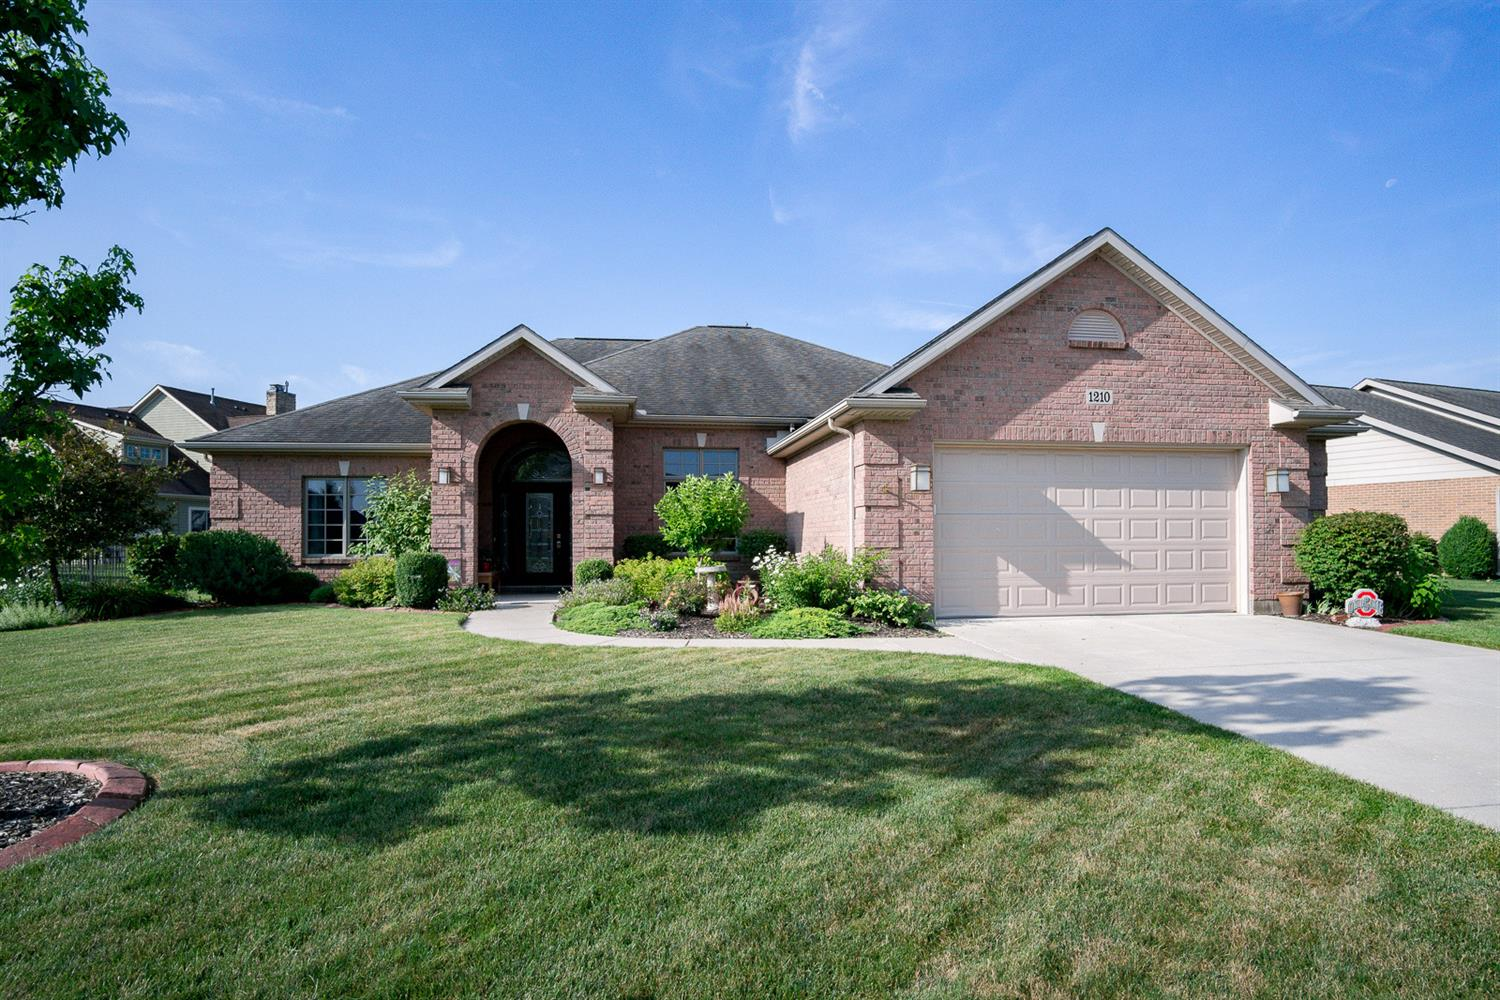 1210 Hazeldean Ct Miami County, OH